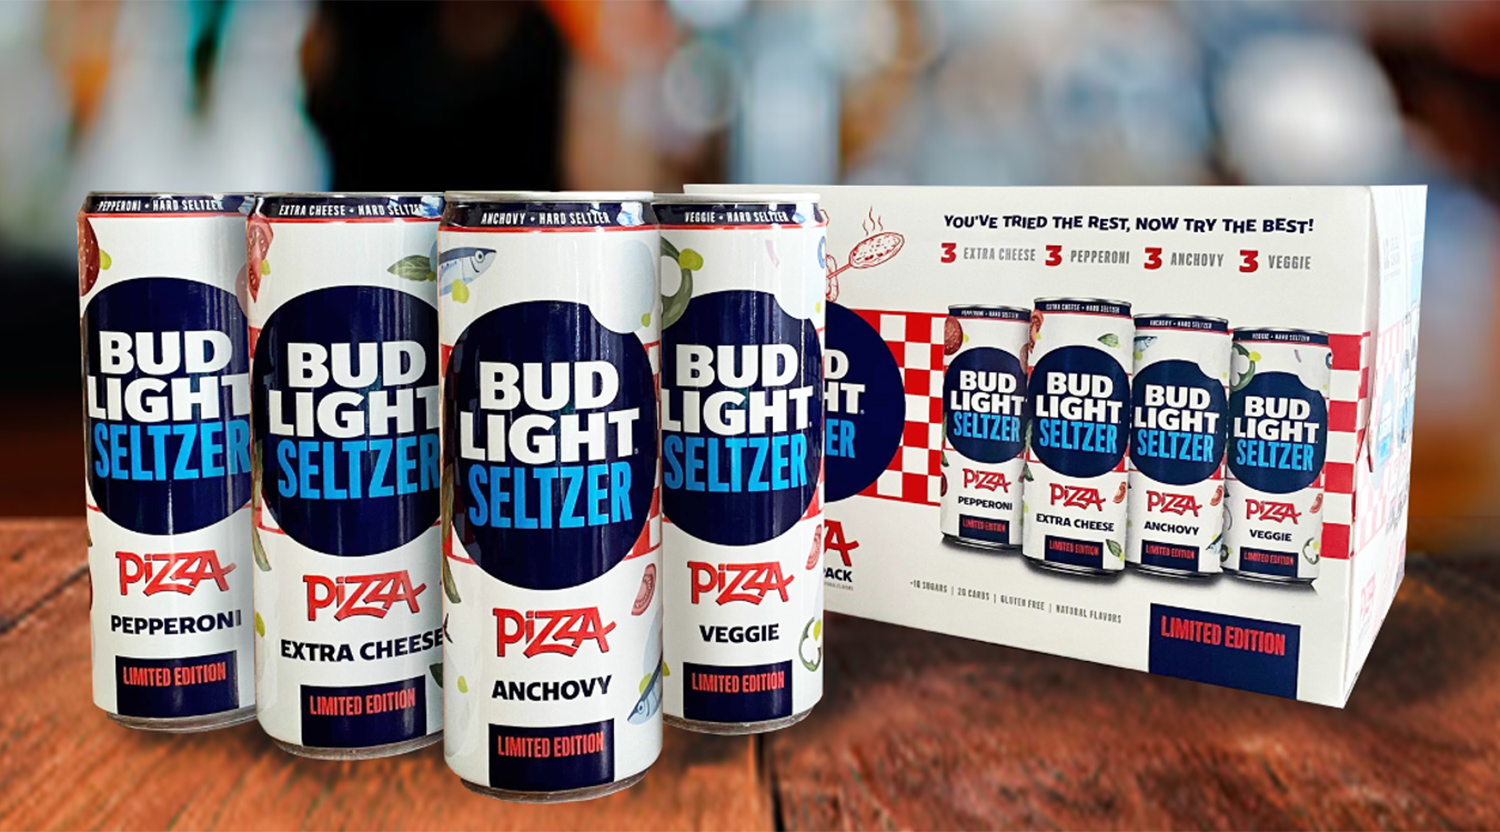 Bud Light Seltzer Pizza Pack